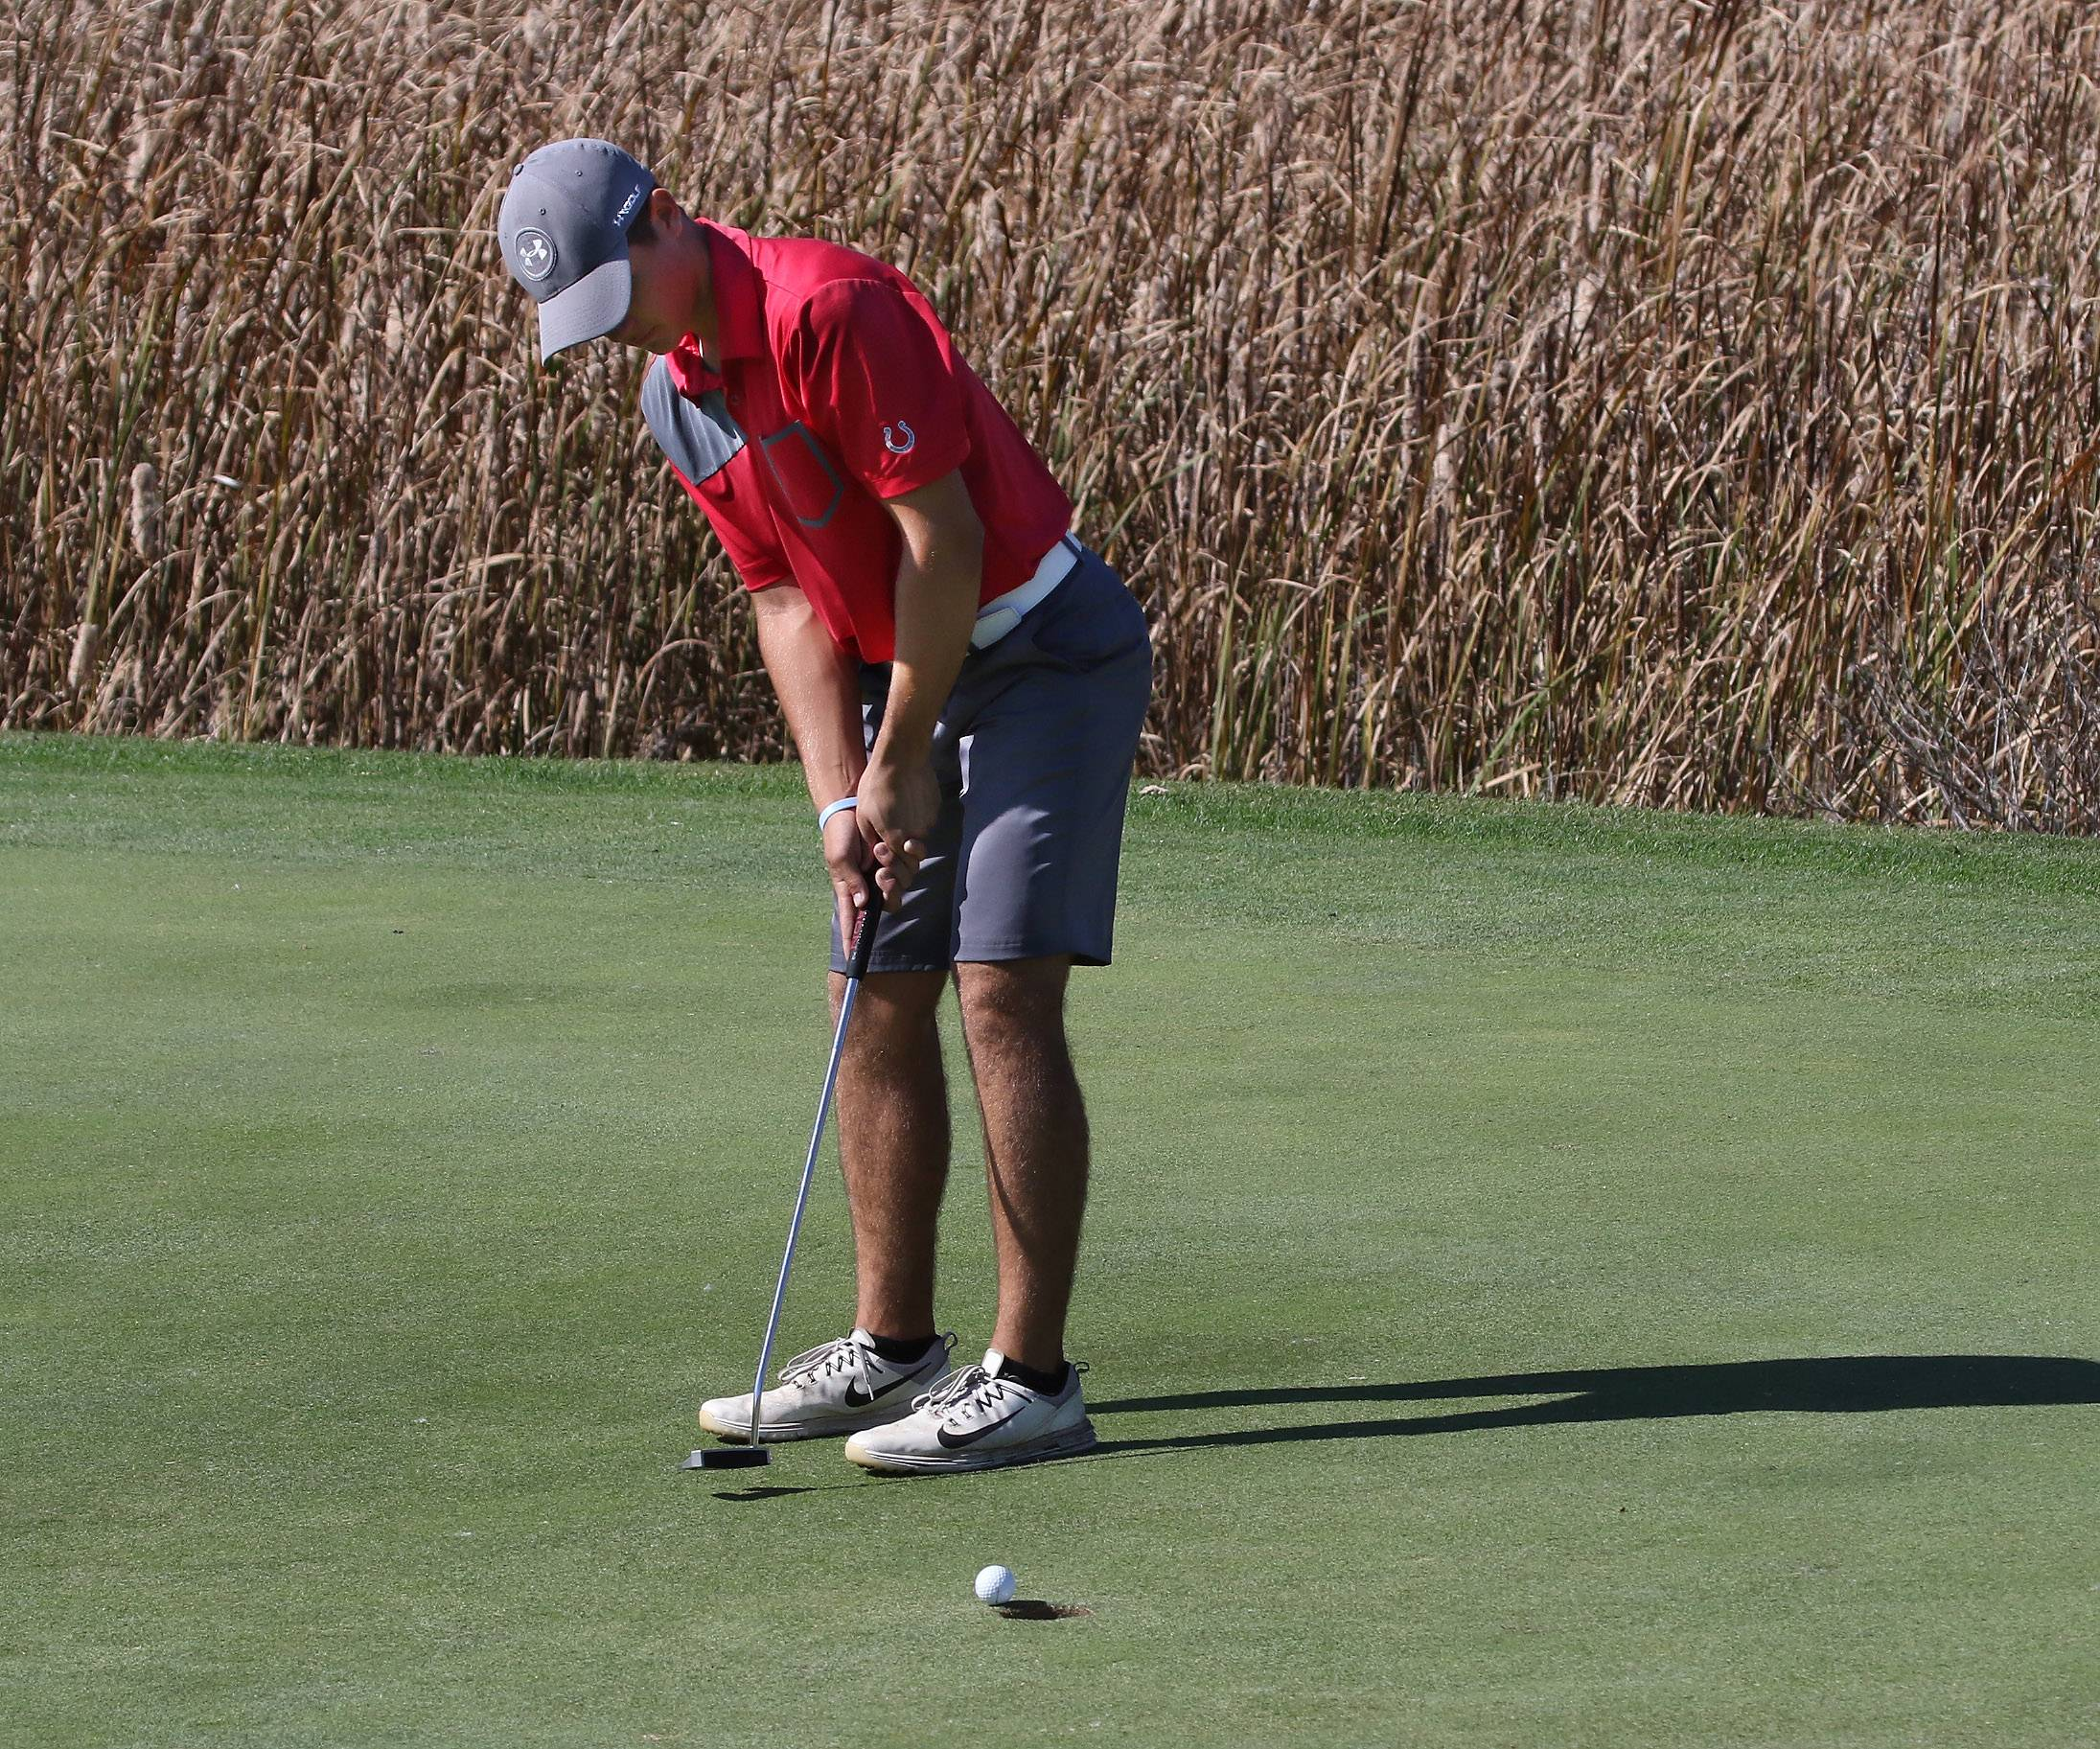 Mundelein's Josh Peterson putts on the second hole during the Class 3A Warren boys golf sectional on Monday at Bittersweet Golf Club in Gurnee.